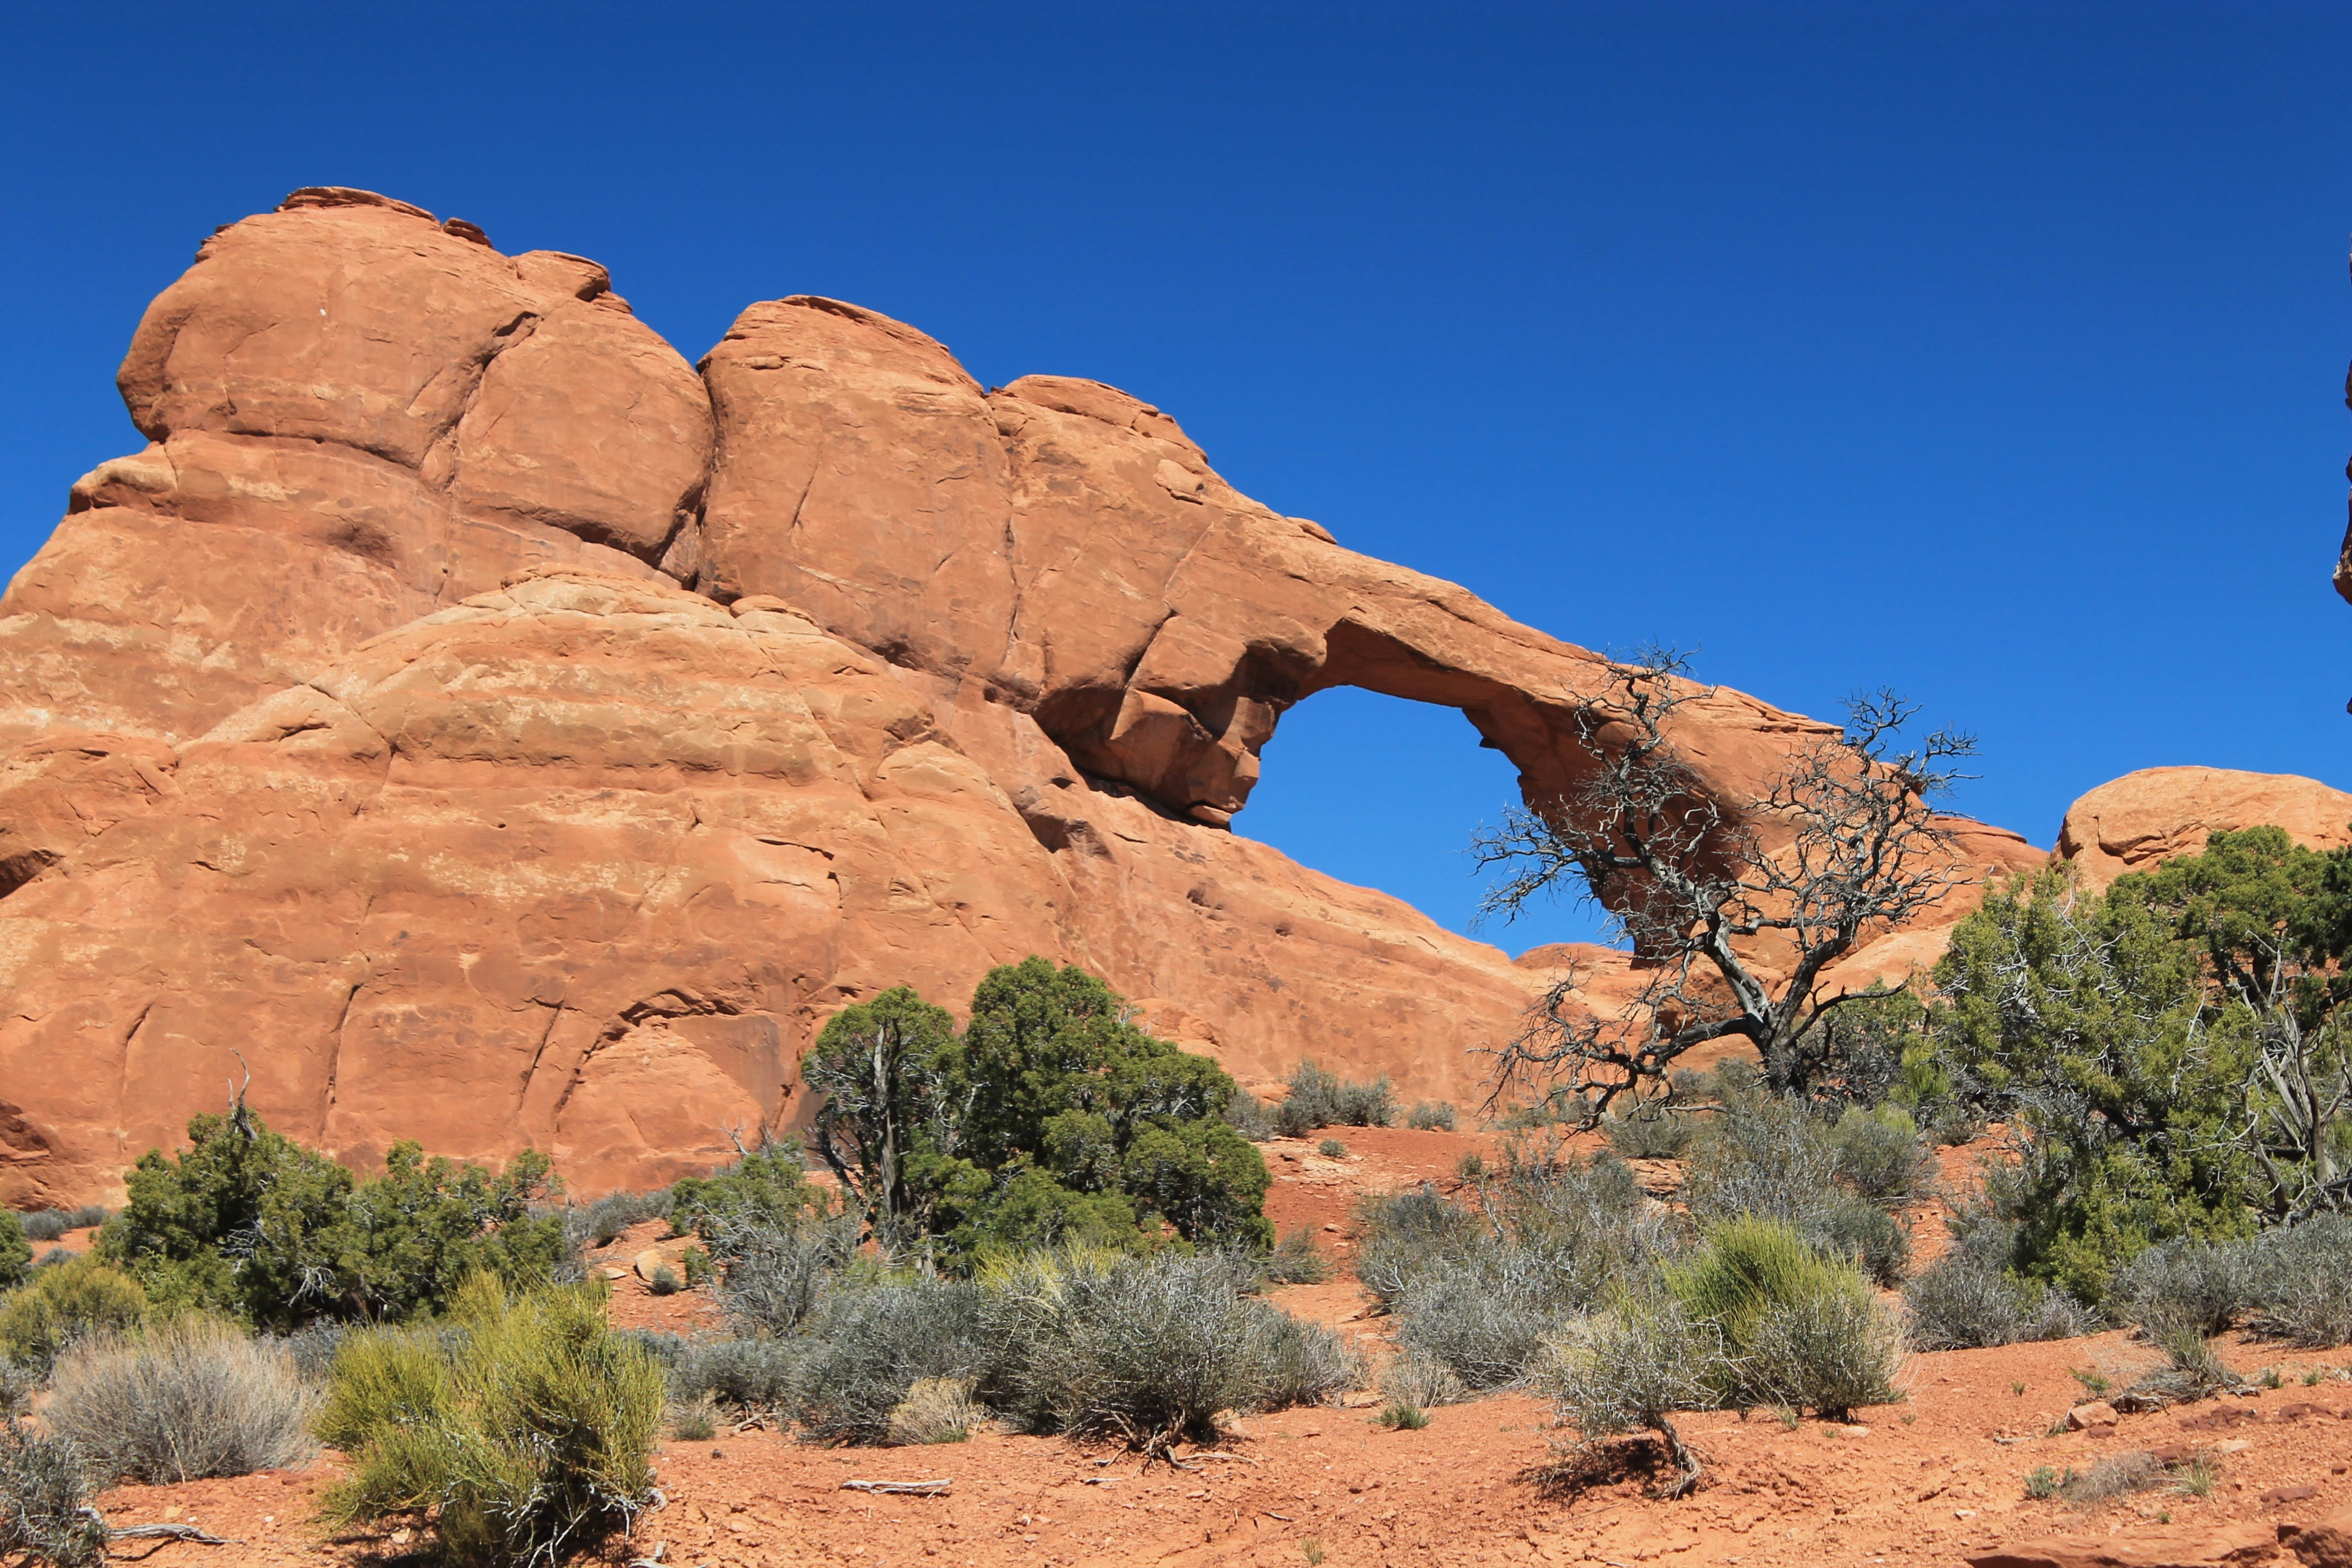 Arc Rock Formation Under Blue Clouds during Daytime